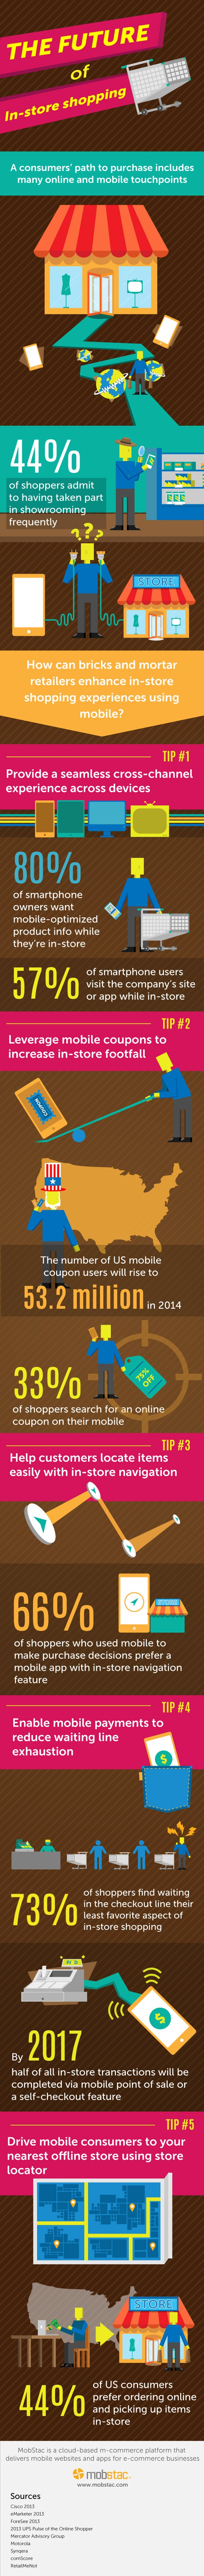 Mobile Phones Are Changing Retail. Here's How. (Infographic)